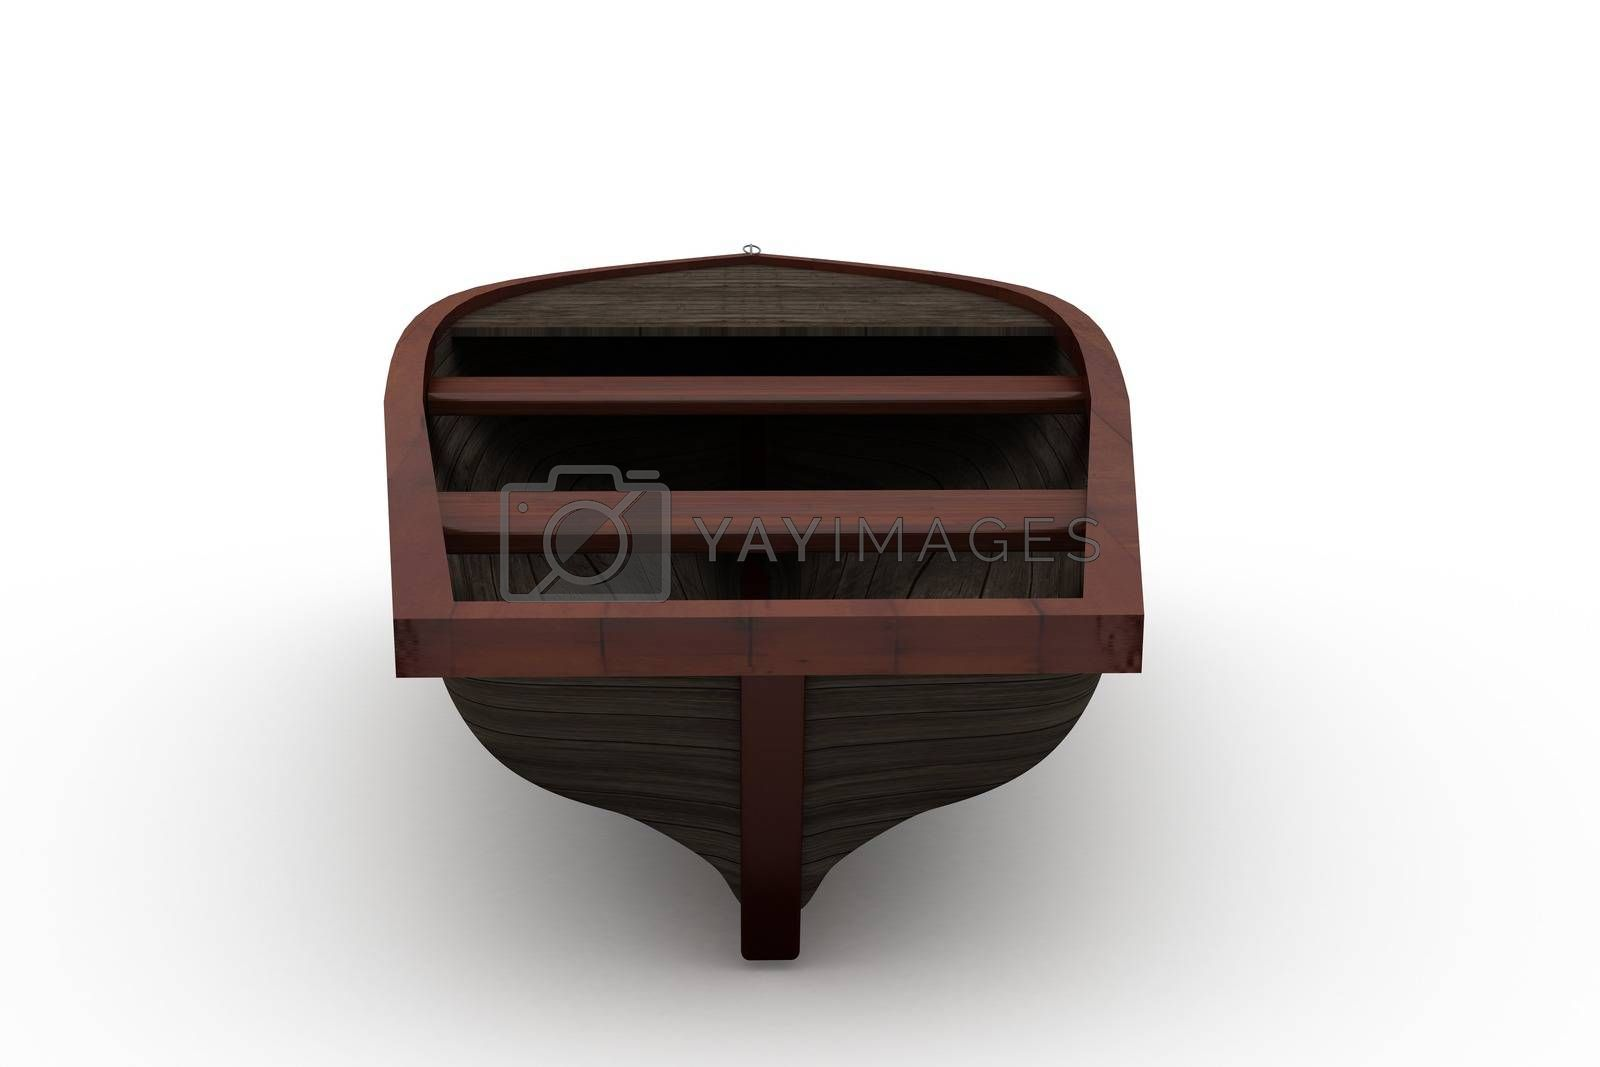 Royalty free image of Brown wooden boat with shadow by Wavebreakmedia